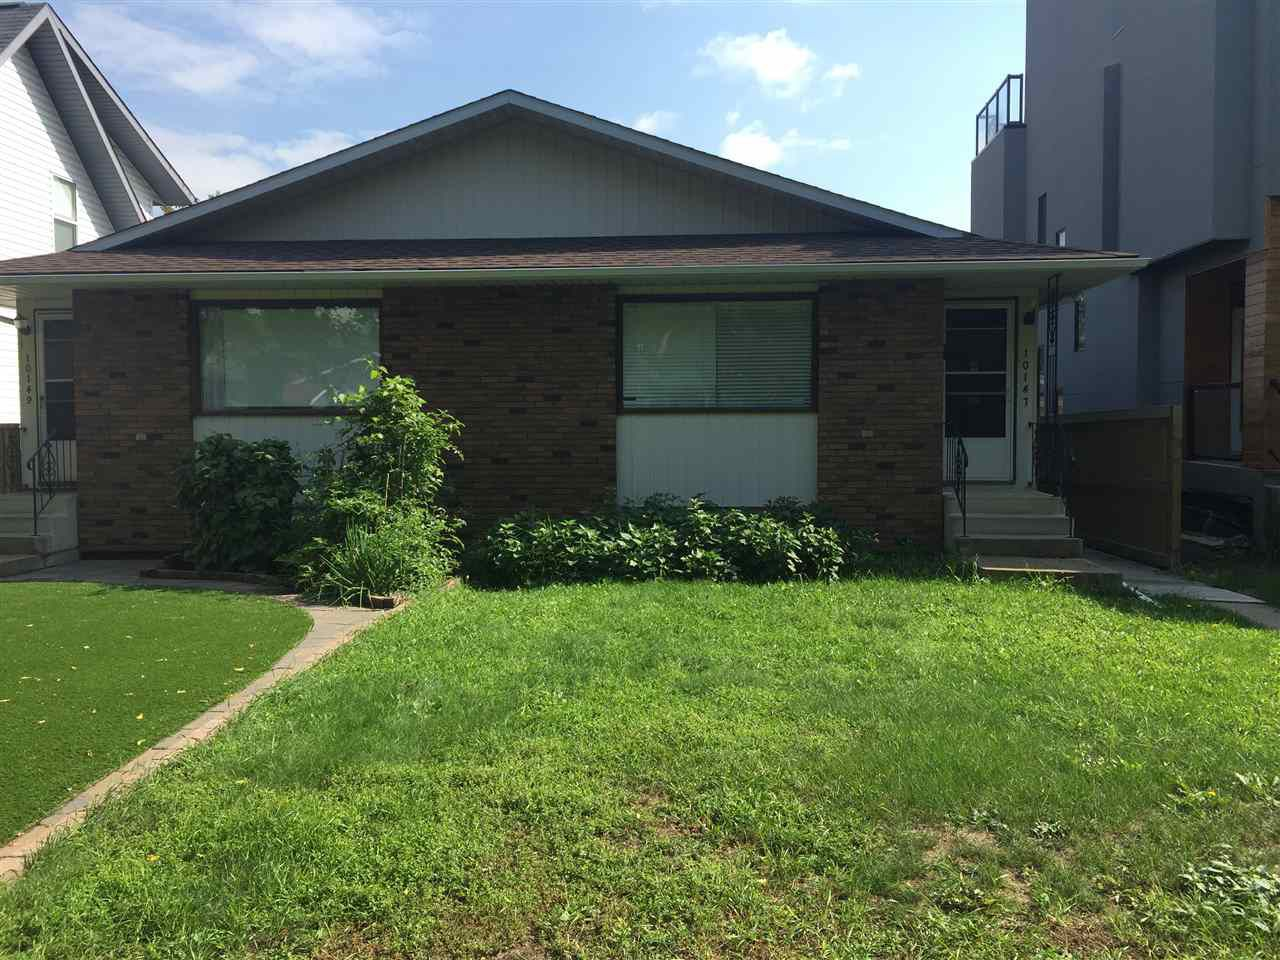 Main Photo: 10147 88 Street in Edmonton: Zone 13 House Half Duplex for sale : MLS®# E4145990